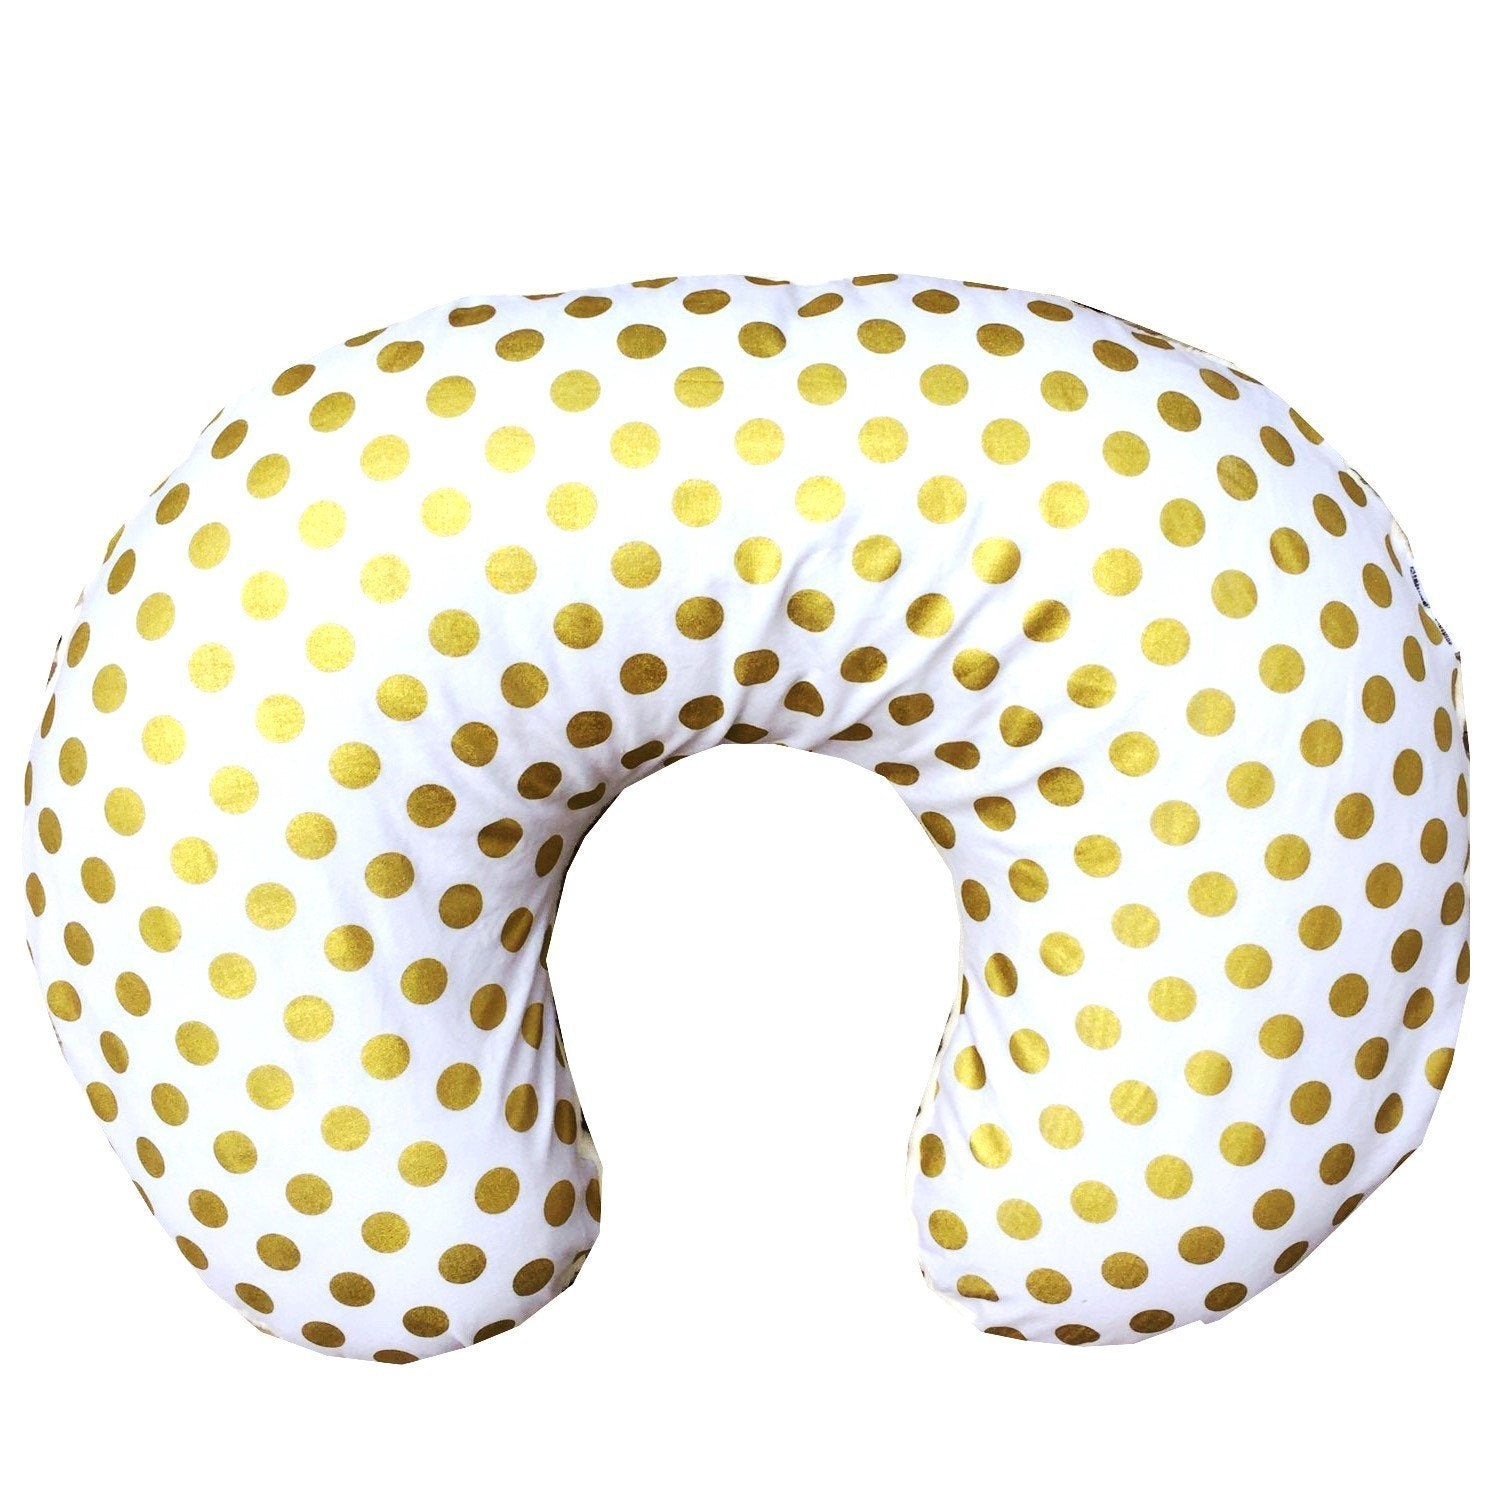 Boppy Covers | Metallic Gold Dots-Boppy Cover-Bold Bedding-Large Dots-Jack and Jill Boutique